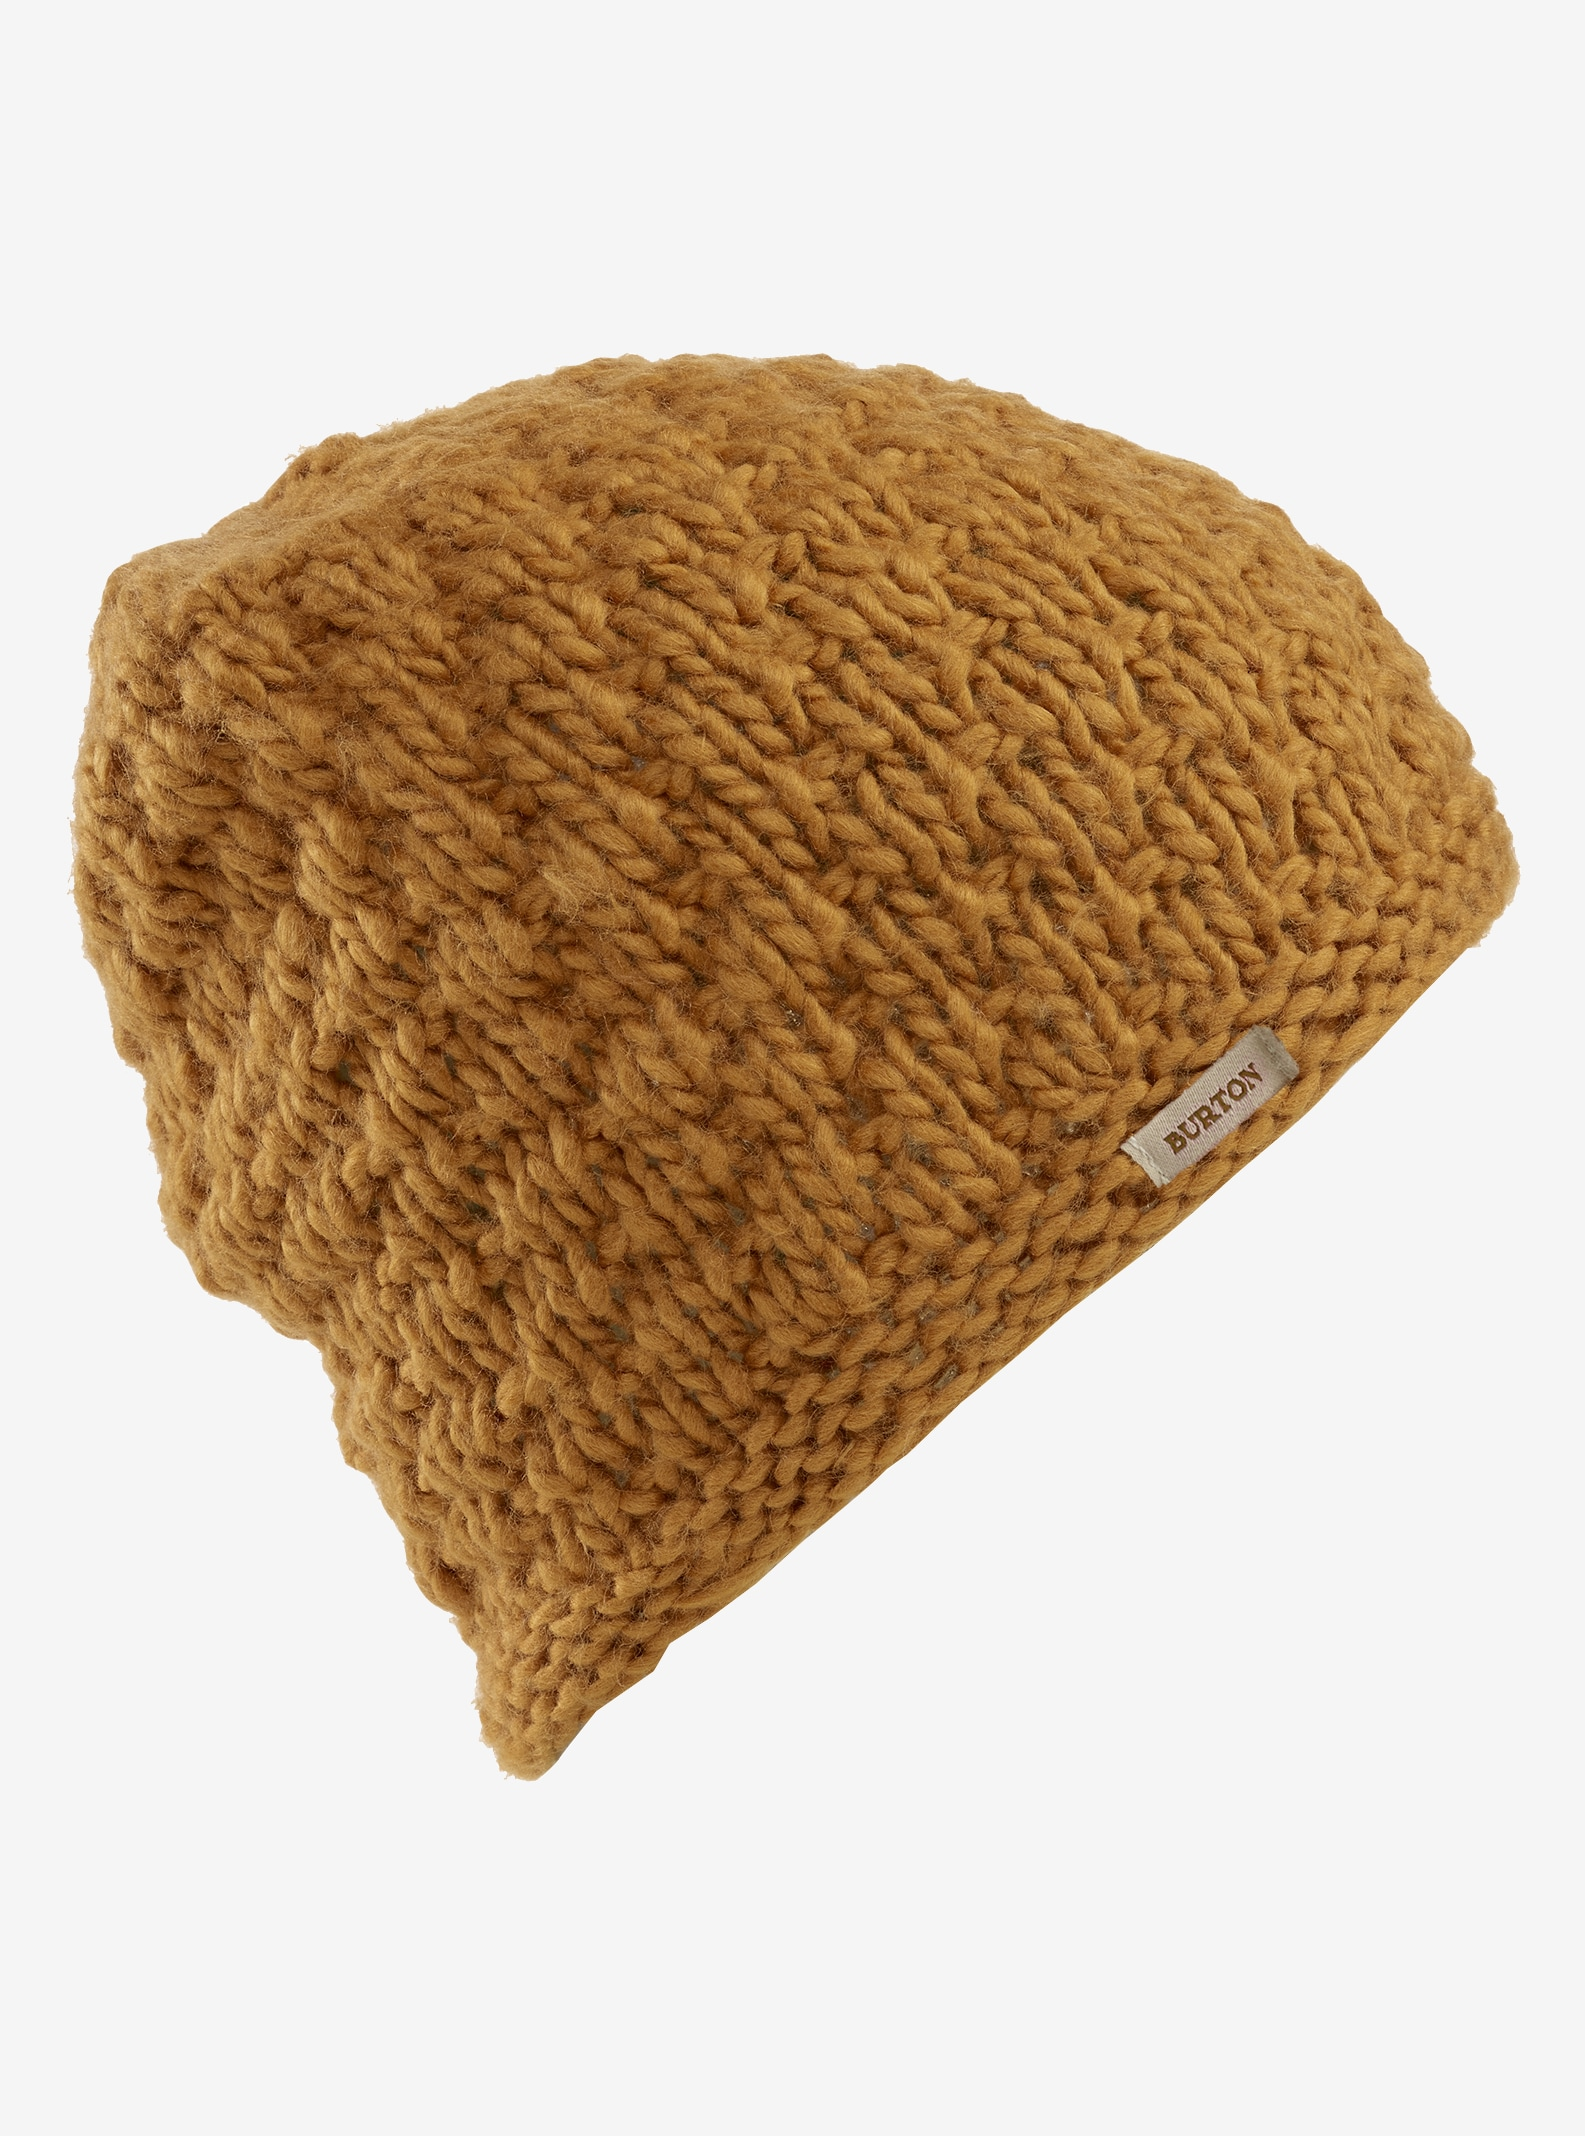 Women's Burton Big Bertha Beanie shown in Harvest Gold